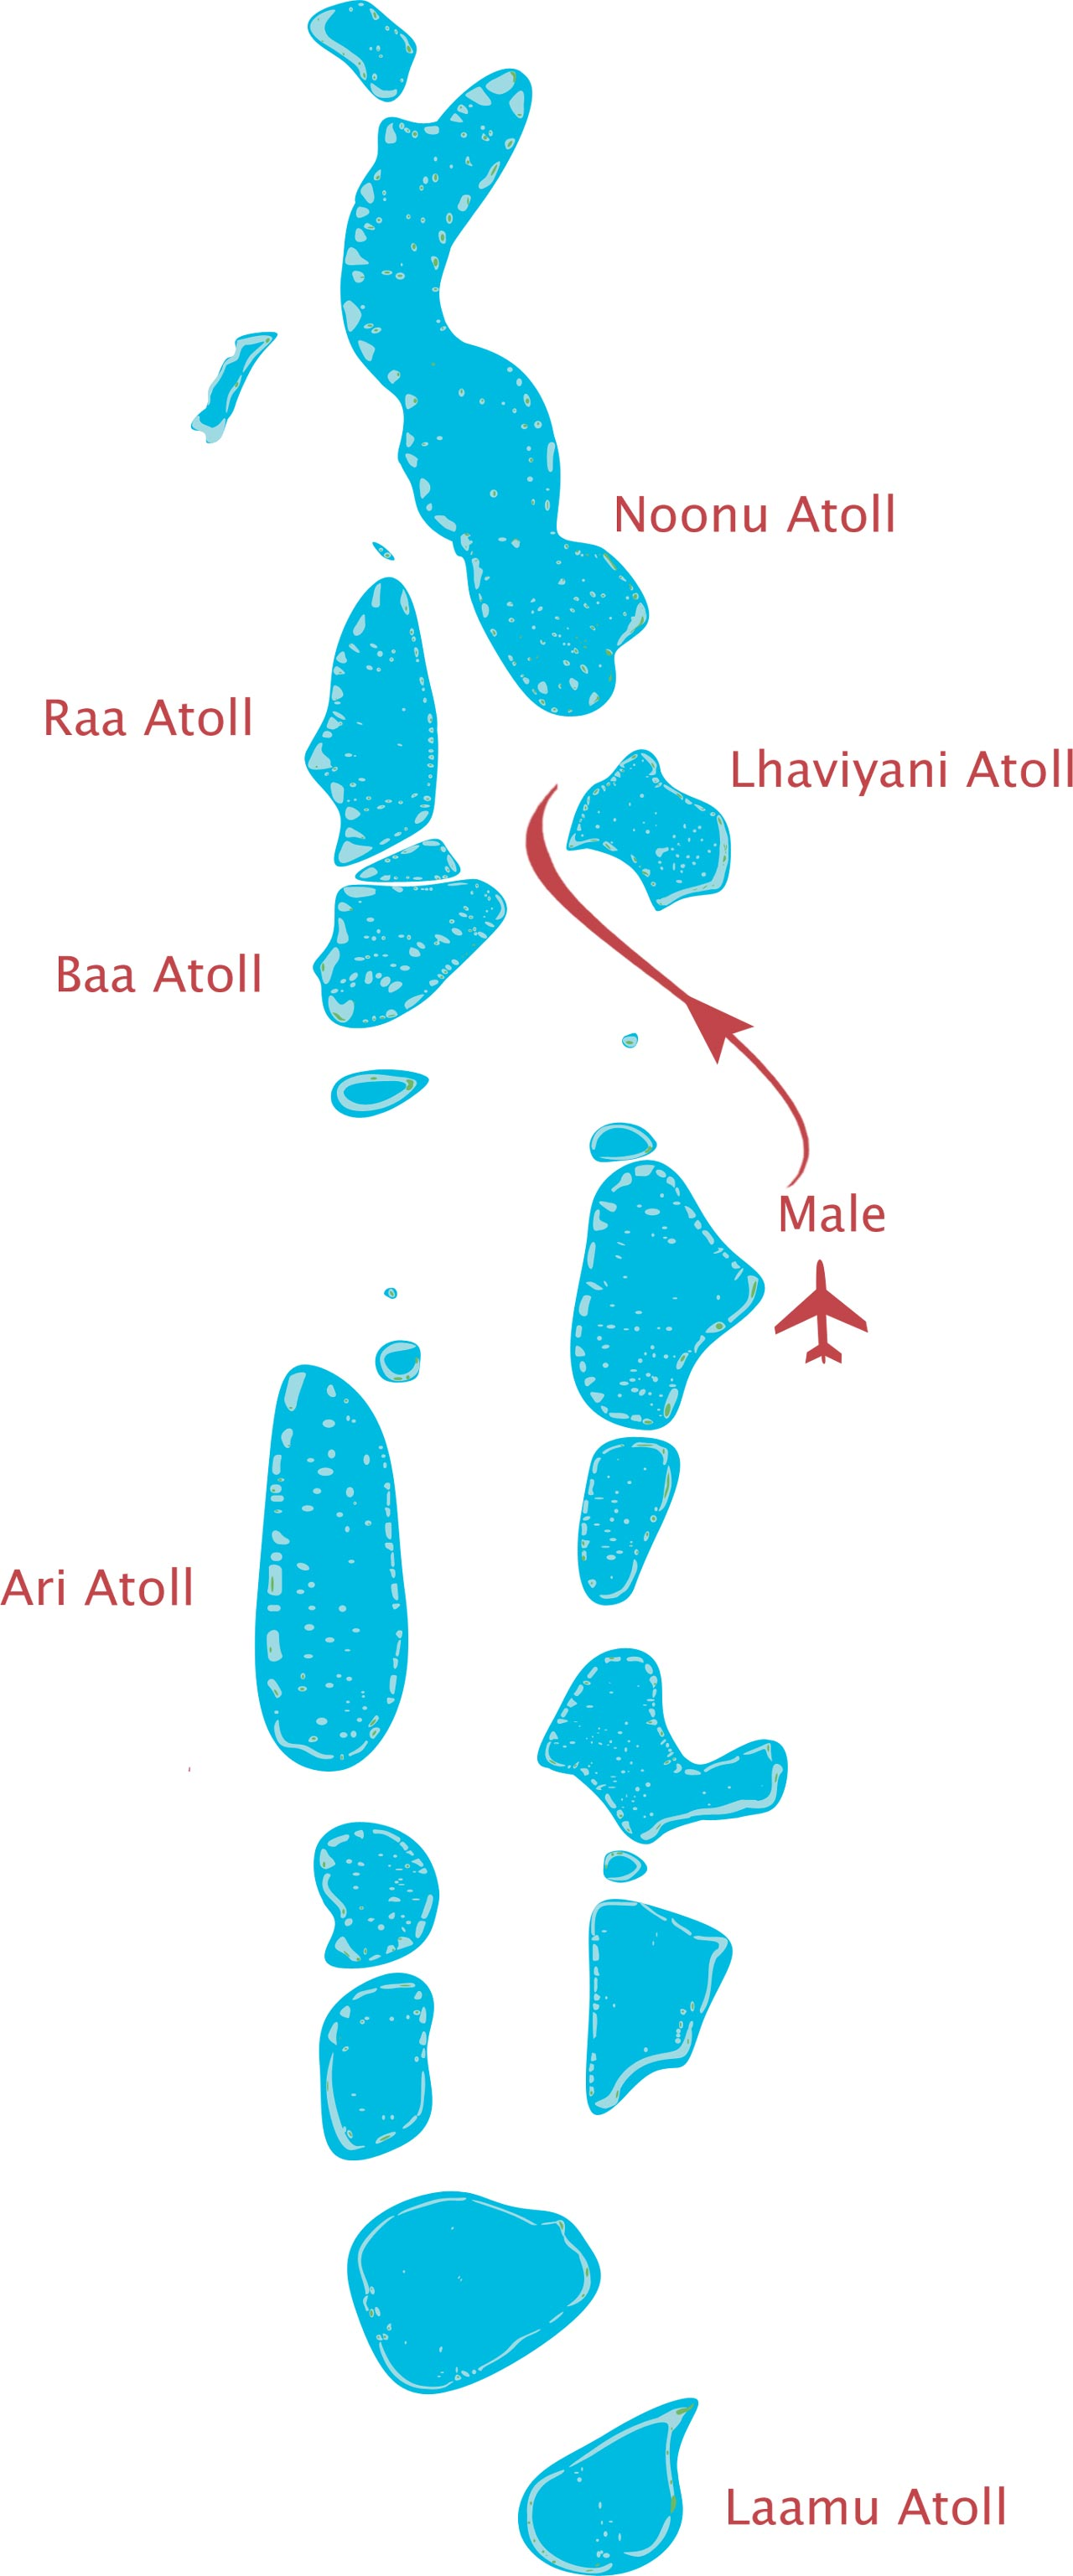 Route Hurawalhi Seaplane Maldives